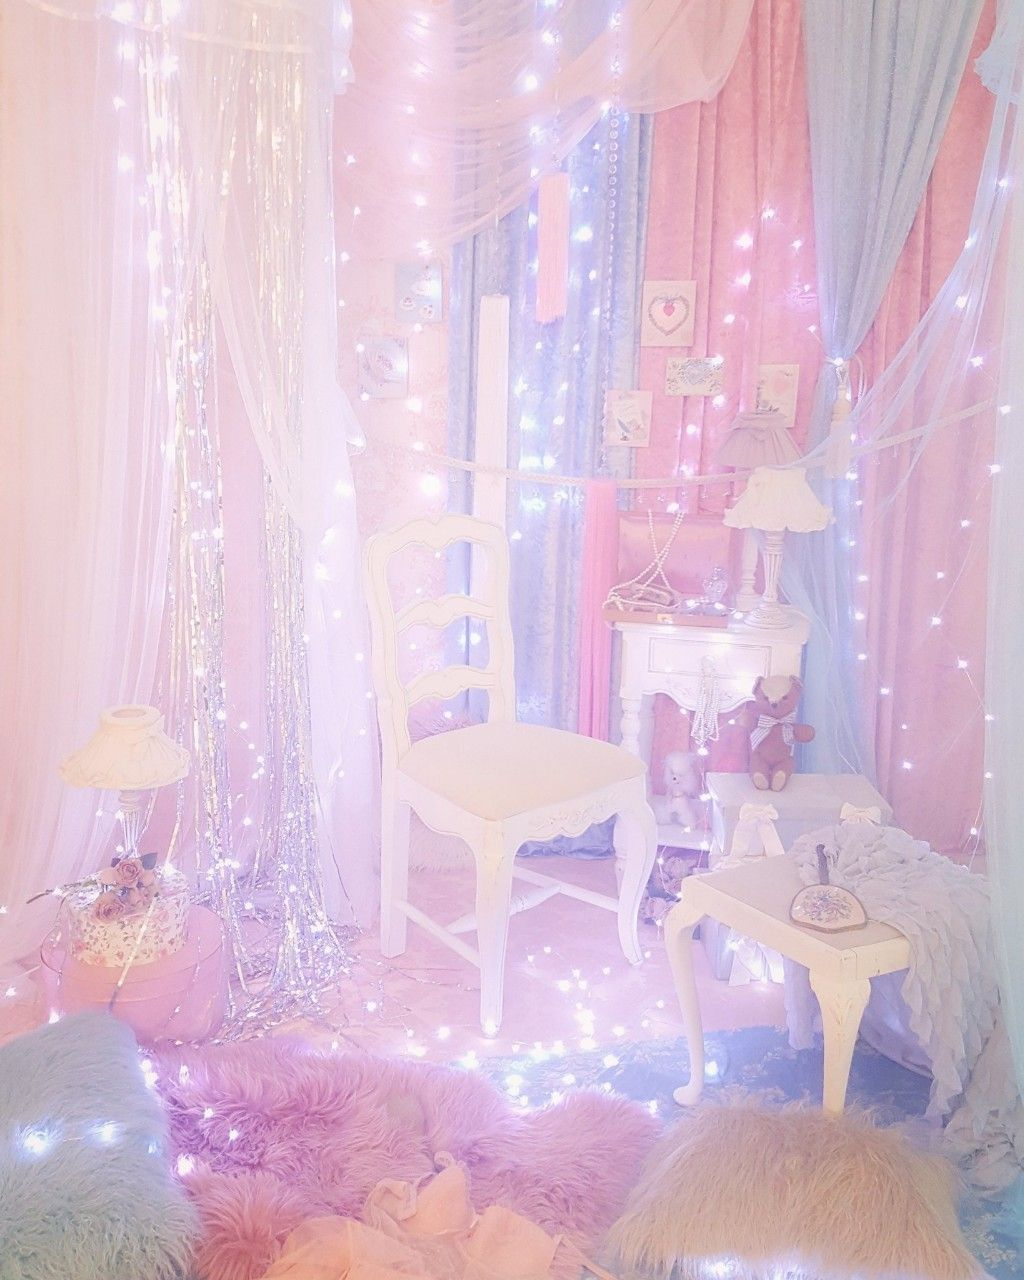 Kiss hug kiss bedrooms unicorn rooms unicorn bedroom pastel room for Unicorn bedroom theme